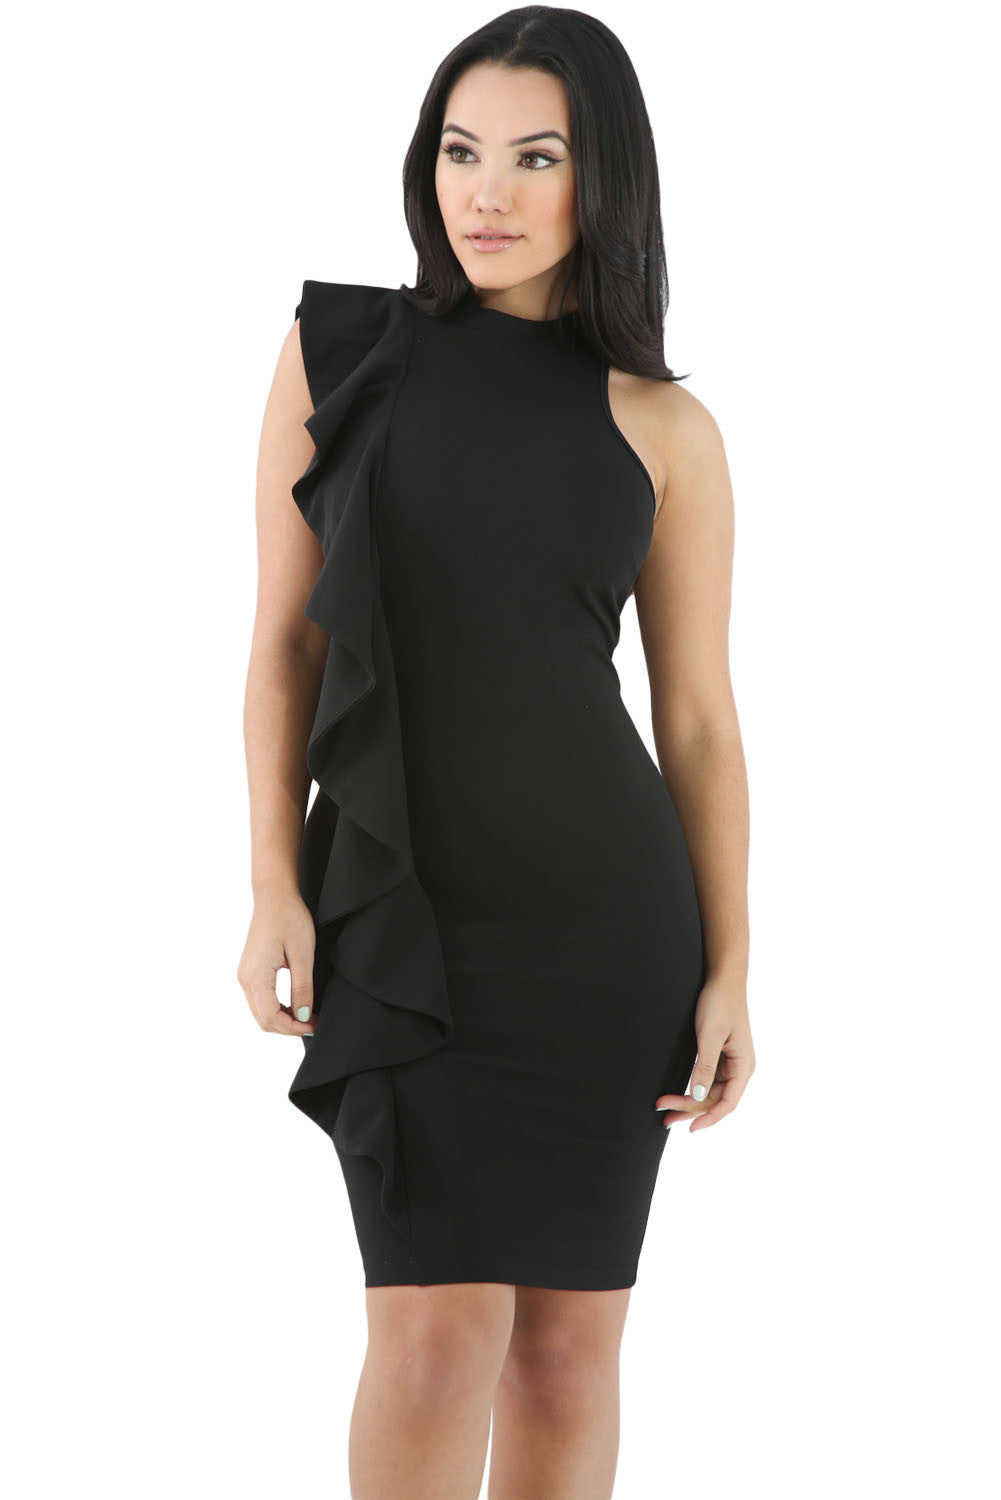 Chicloth Black Ruffle Trim Body hugging Mini Dress